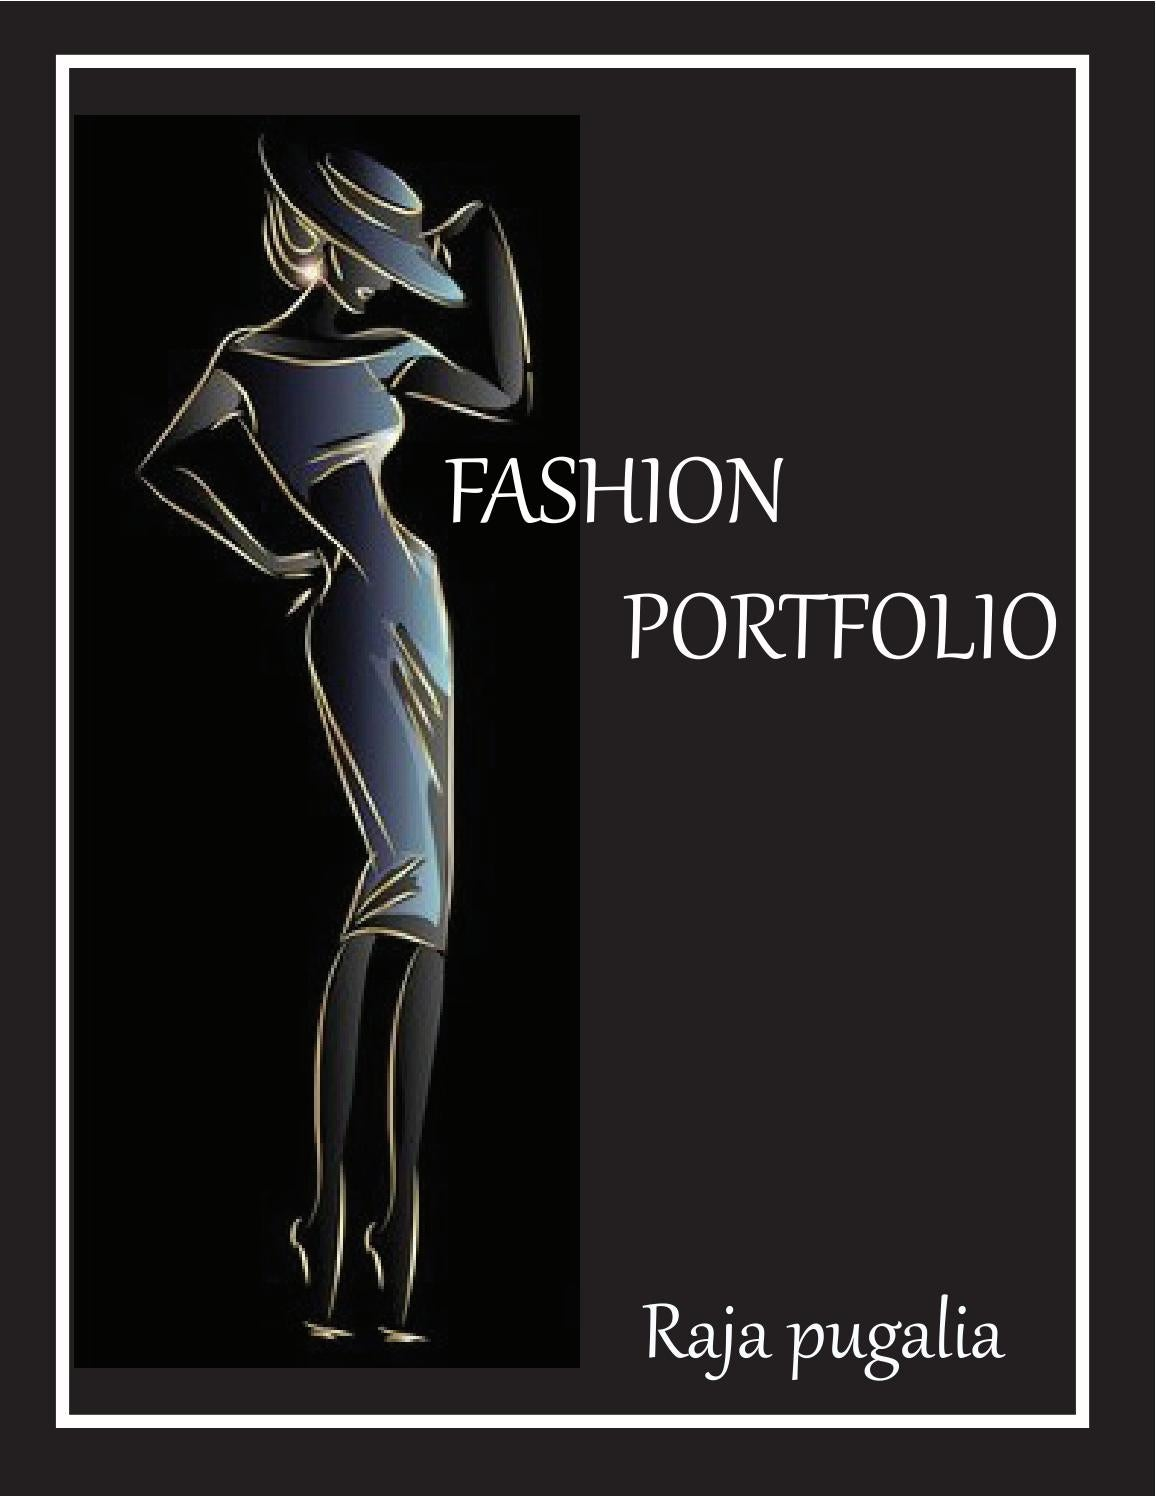 Fashion Designer Portfolio By Raja Pugalia Issuu